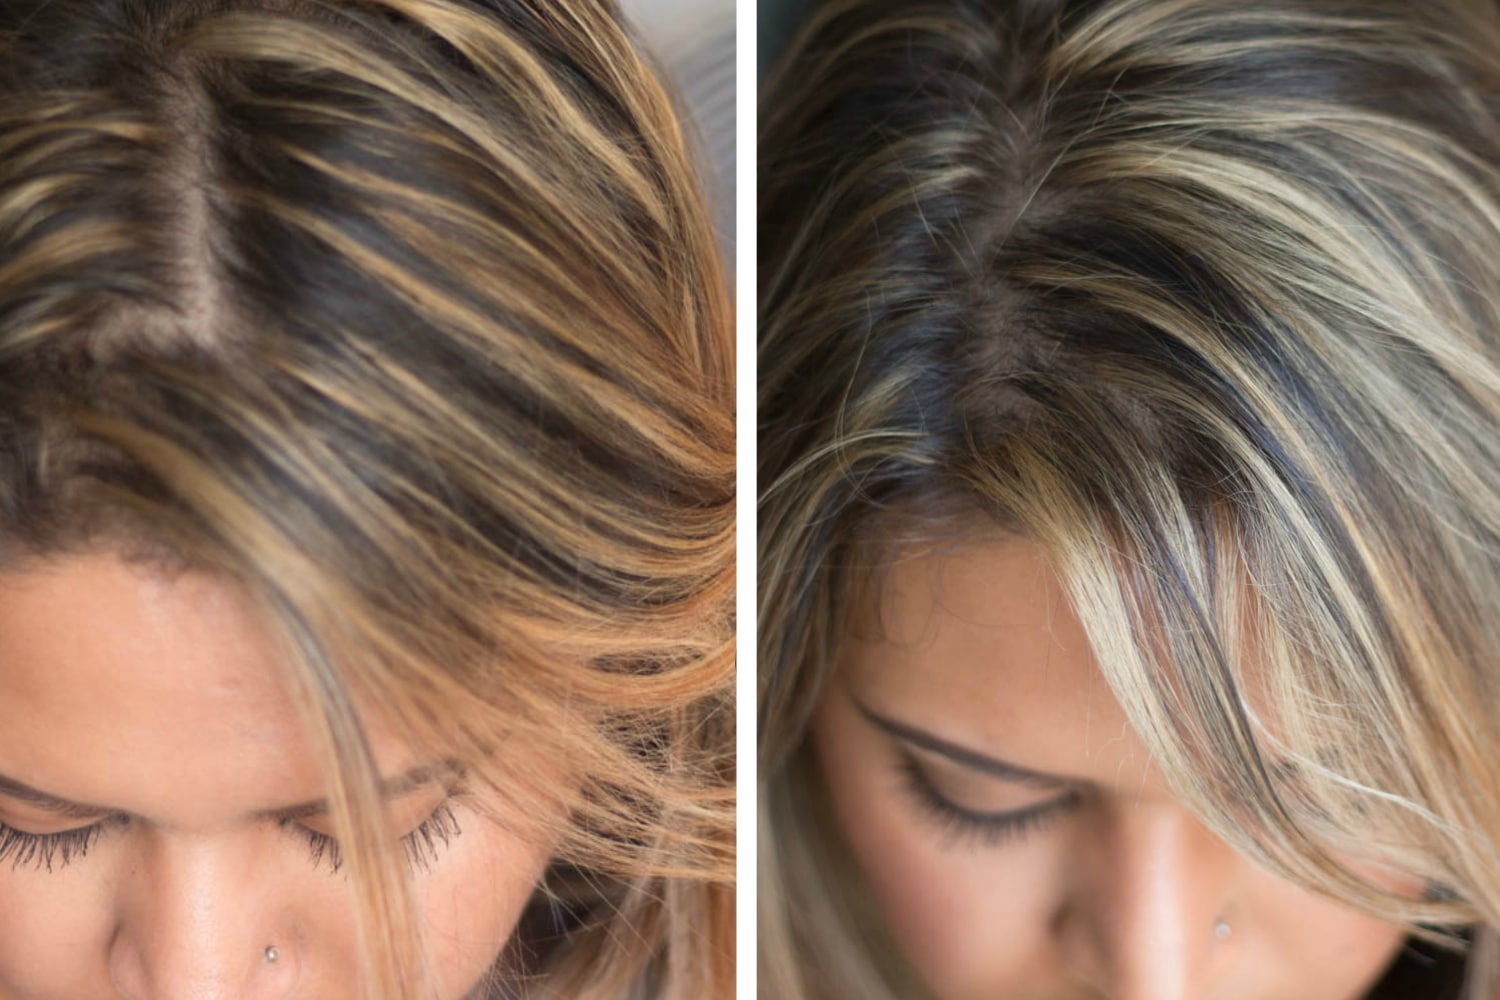 Before and after hair toner 1